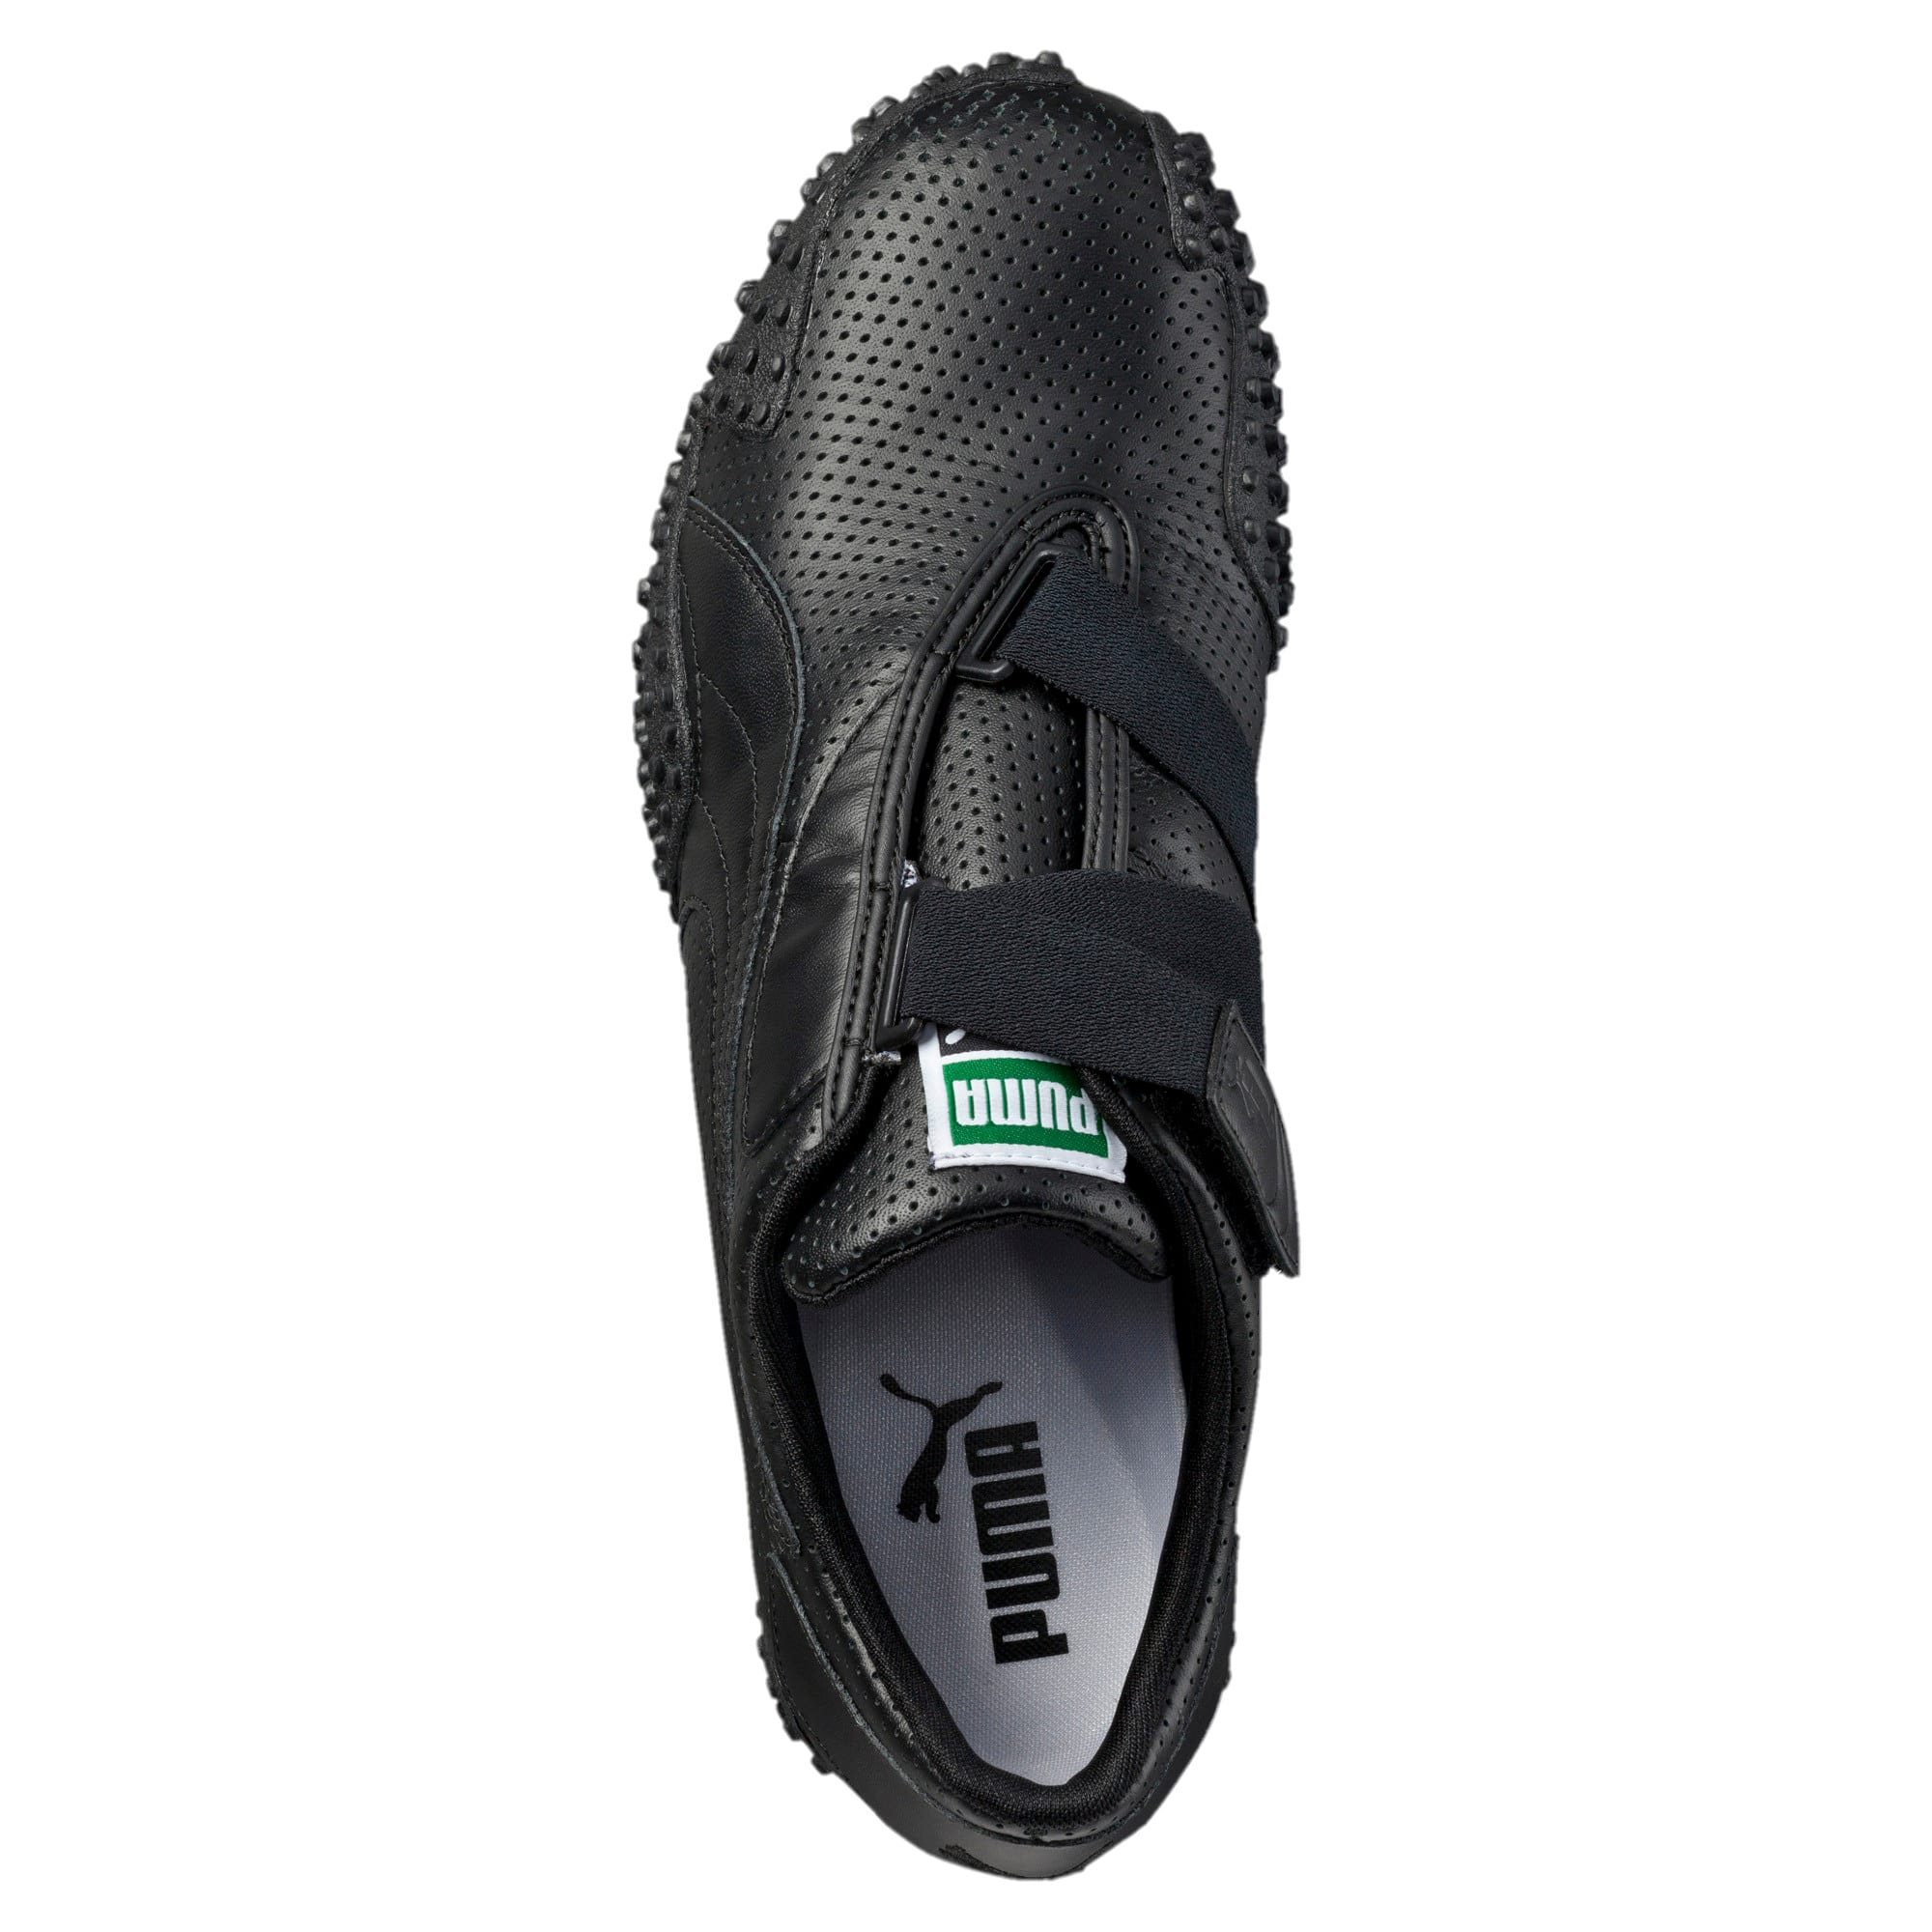 PUMA MOSTRO Perf Leather Shoes 8 Black for sale online   eBay